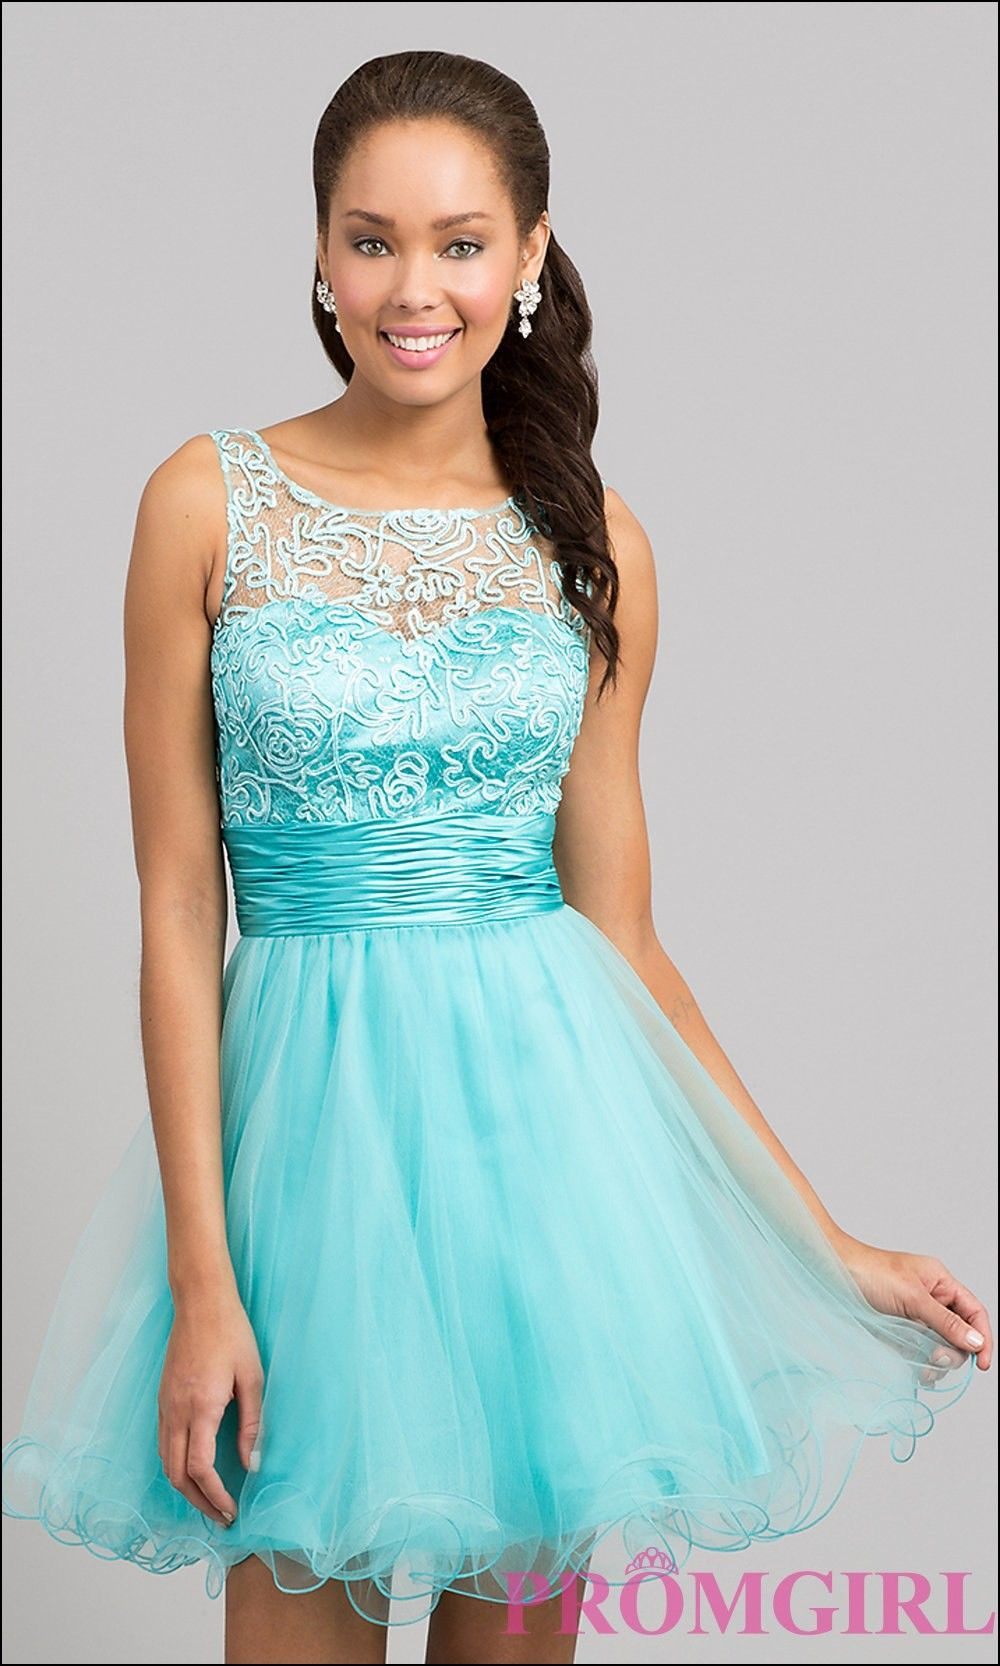 Mint Semi formal Dress | Party dresses | Pinterest | Semi formal ...